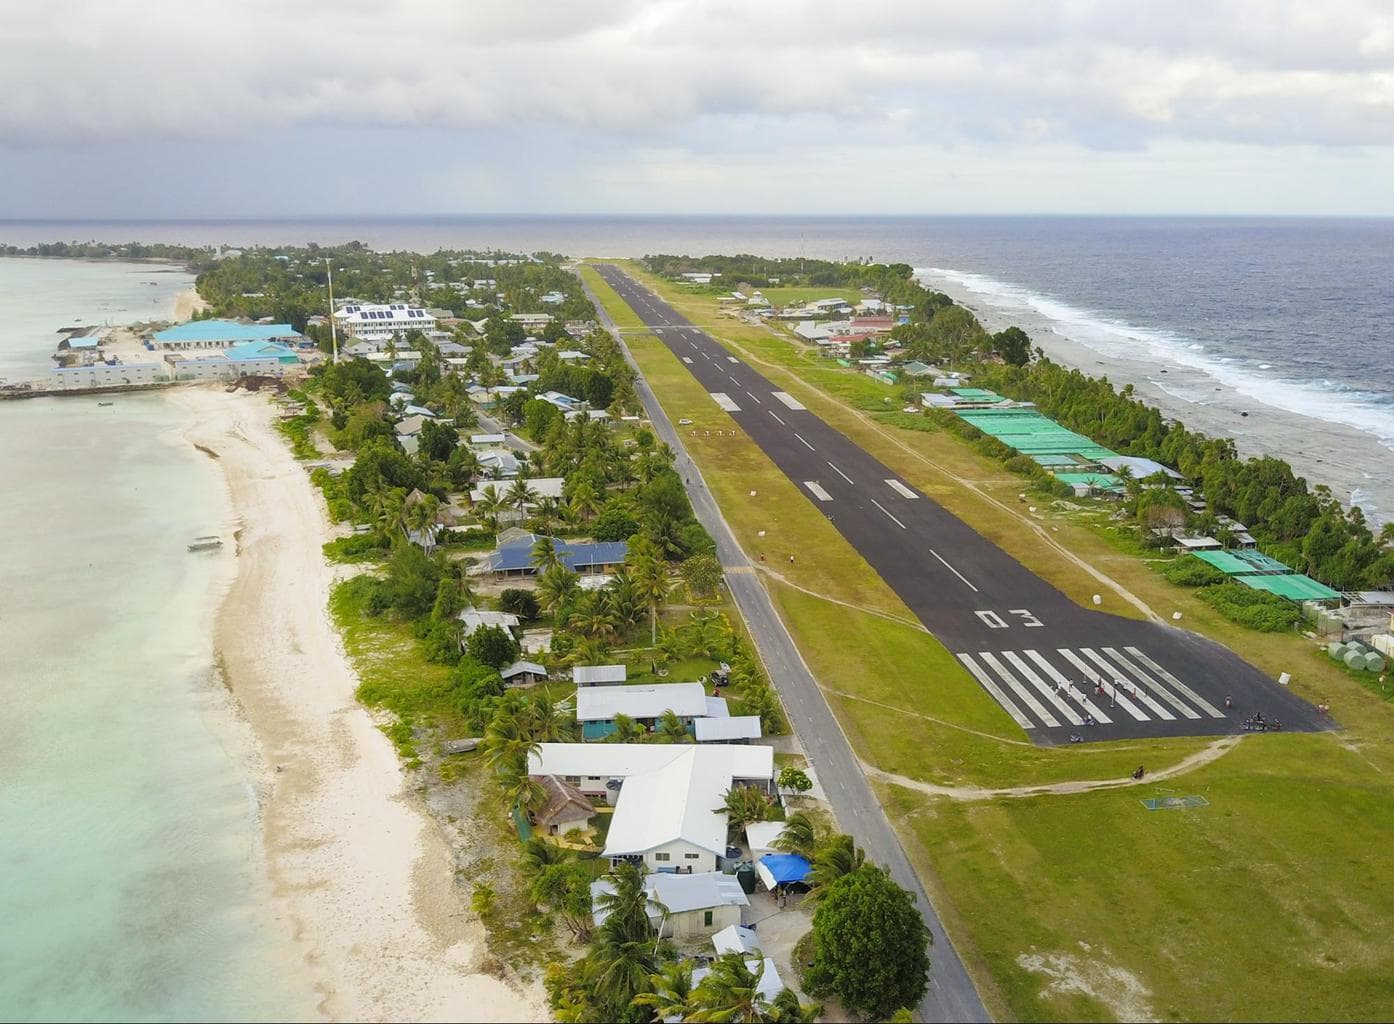 Tuvalu's runway from my drone